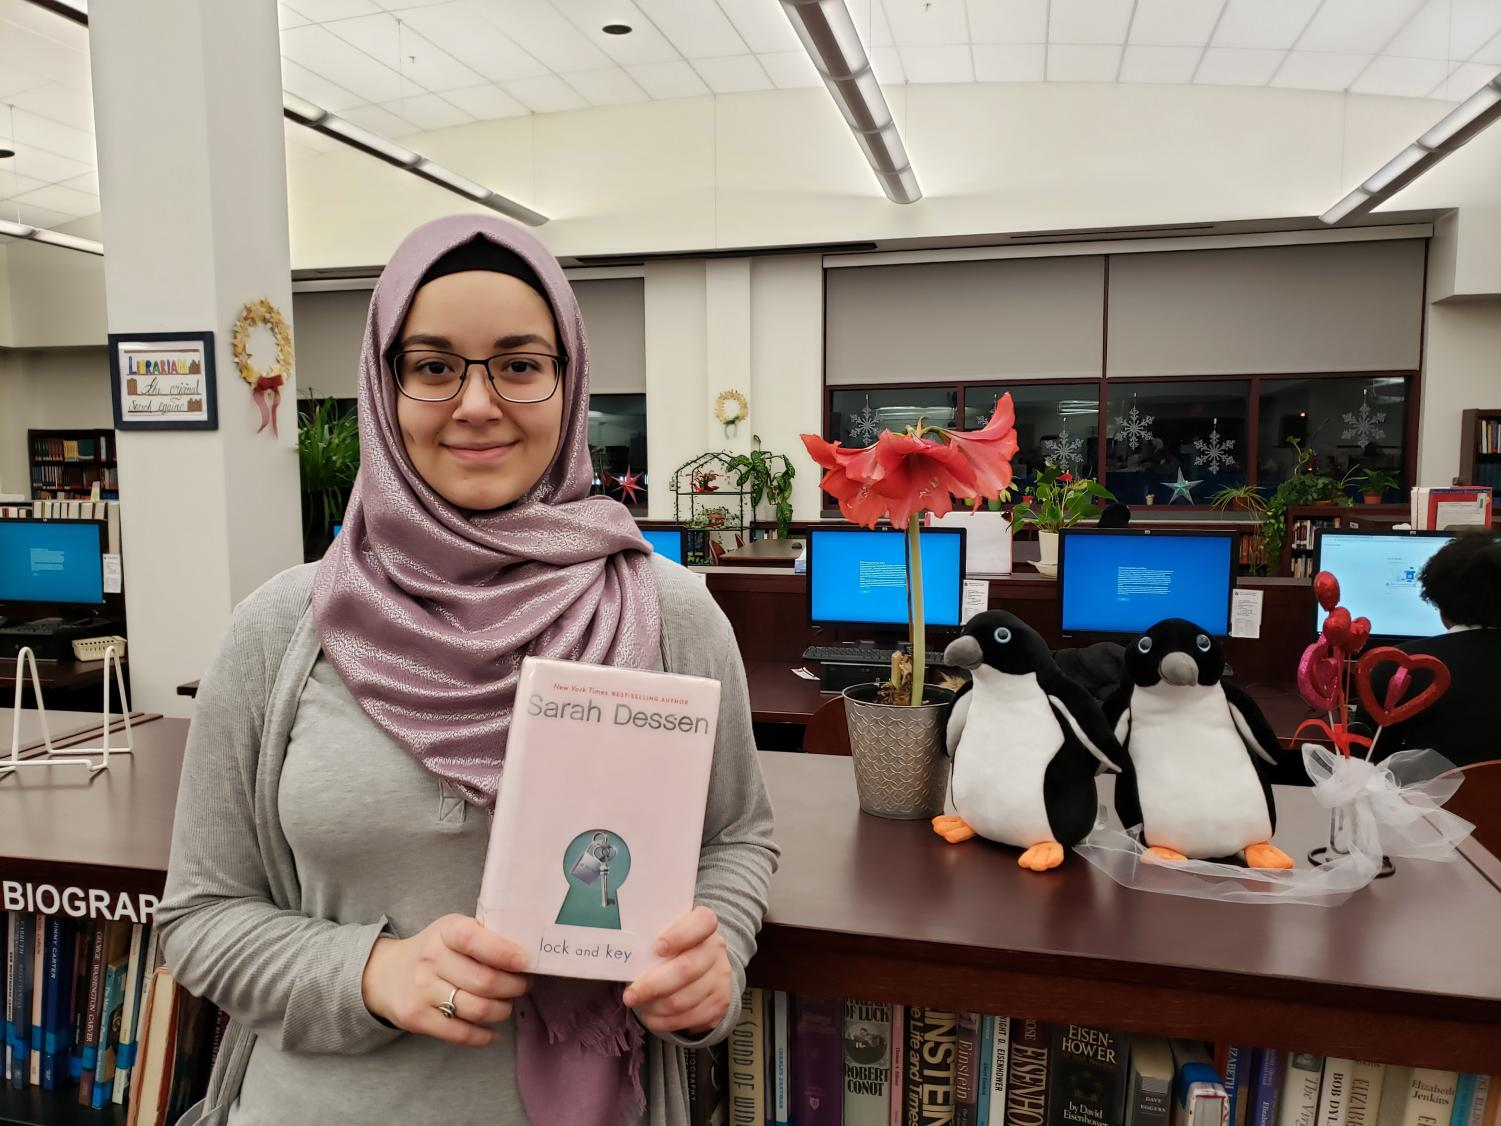 Picture taken by school librarian. Student holding her book recommendation